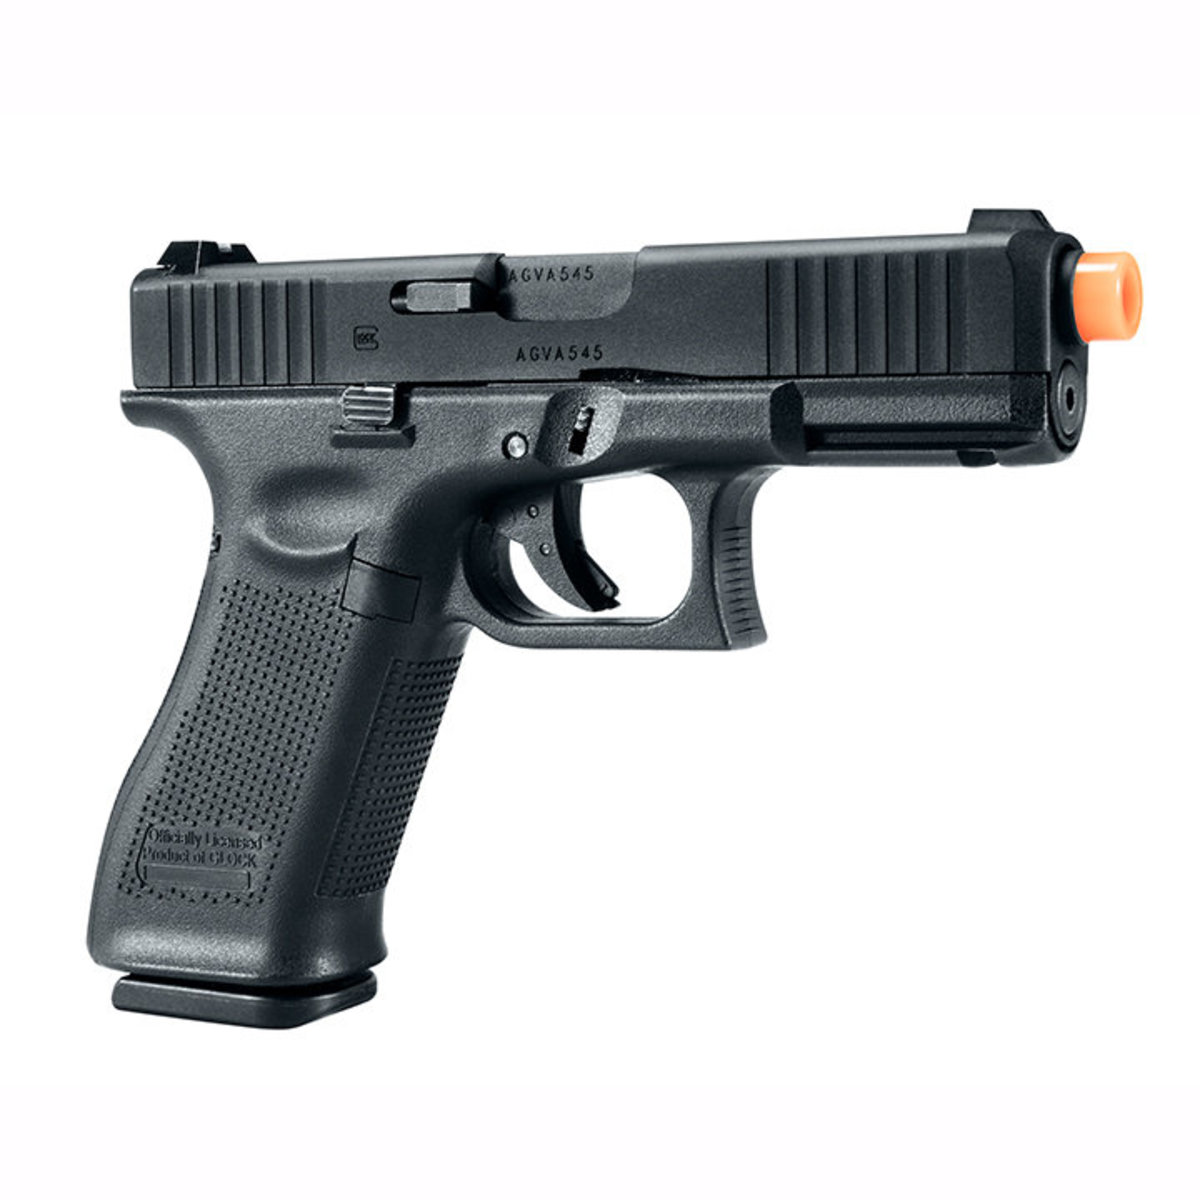 View larger image of Umarex GLOCK 45 Gen5 GBB Airsoft Pistol (VFC)